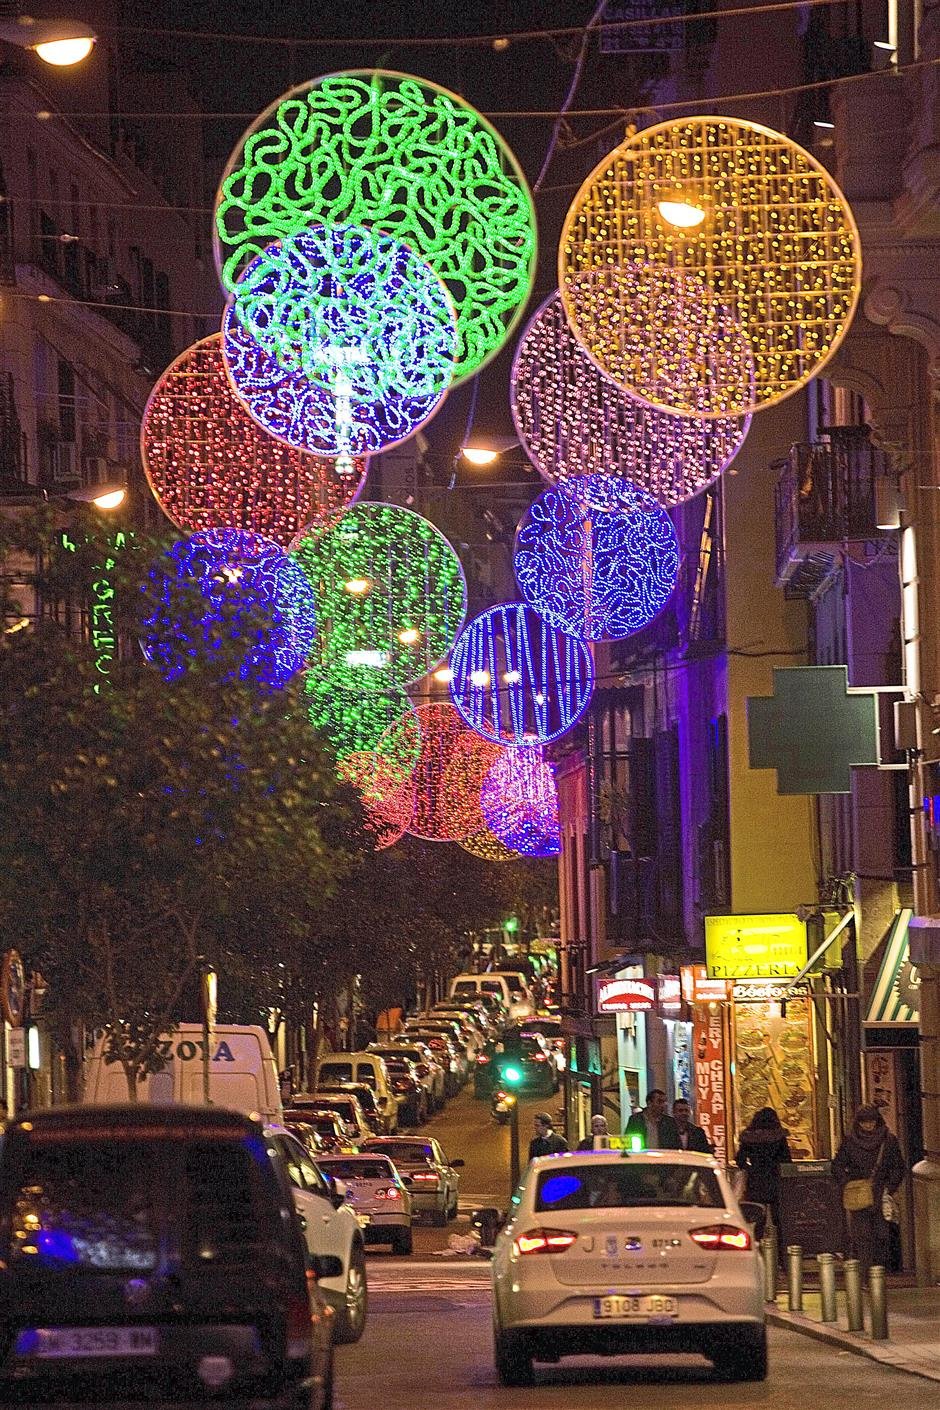 A taxi passing under the Christmas lights illuminating Hortaleza street, in the district of Chueca near Gran Via in the centre of Madrid, Spain. — AFP